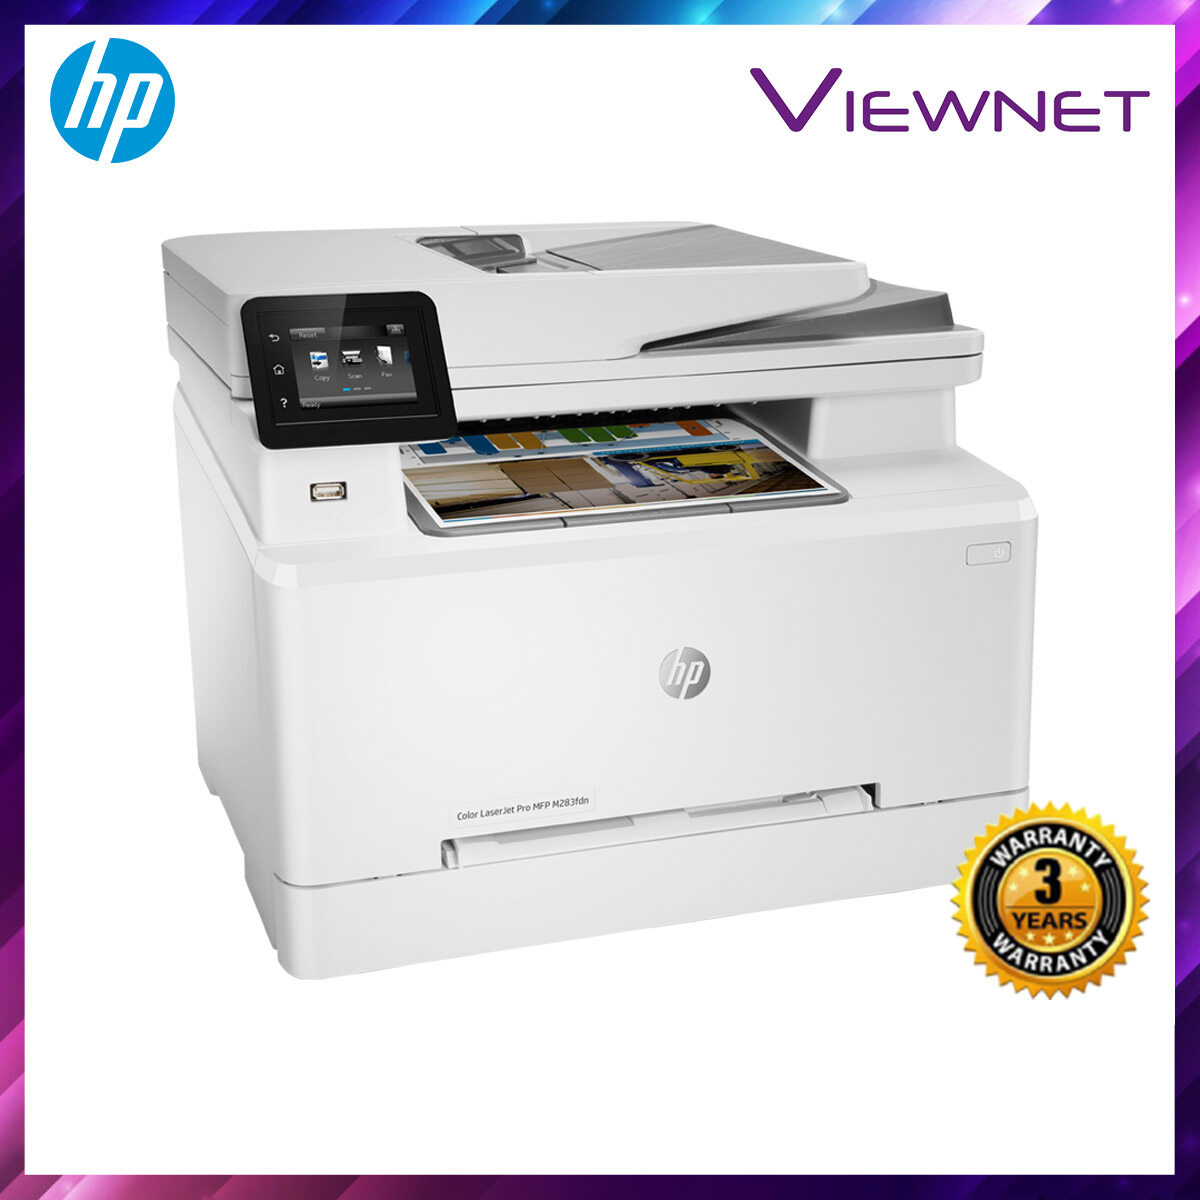 HP Color LaserJet Pro MFP M283fdn PRINT SCAN COPY FAX NETWORK WIRELESS 3 Years Onsite Warranty with 1-to-1 Unit exchange **NEED TO ONLINE REGISTER**